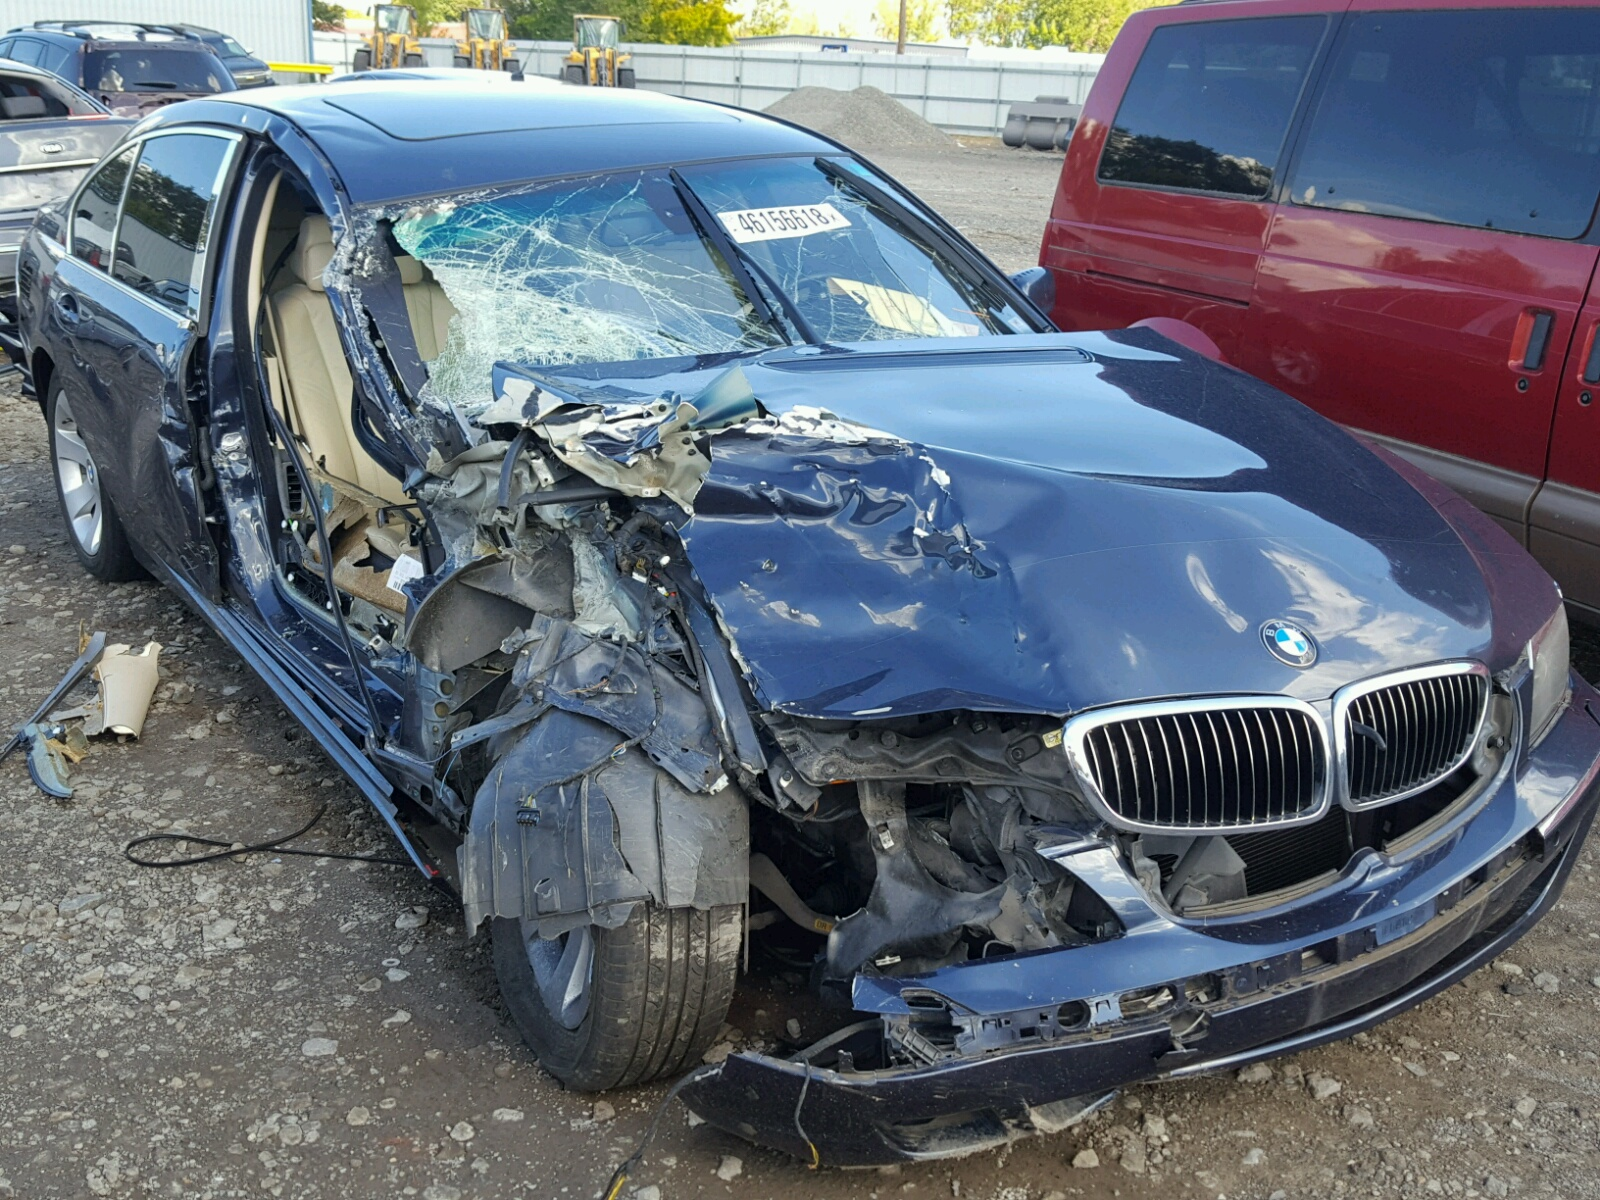 BMW Alpina B For Sale At Copart Portland OR Lot - 2007 bmw alpina b7 for sale